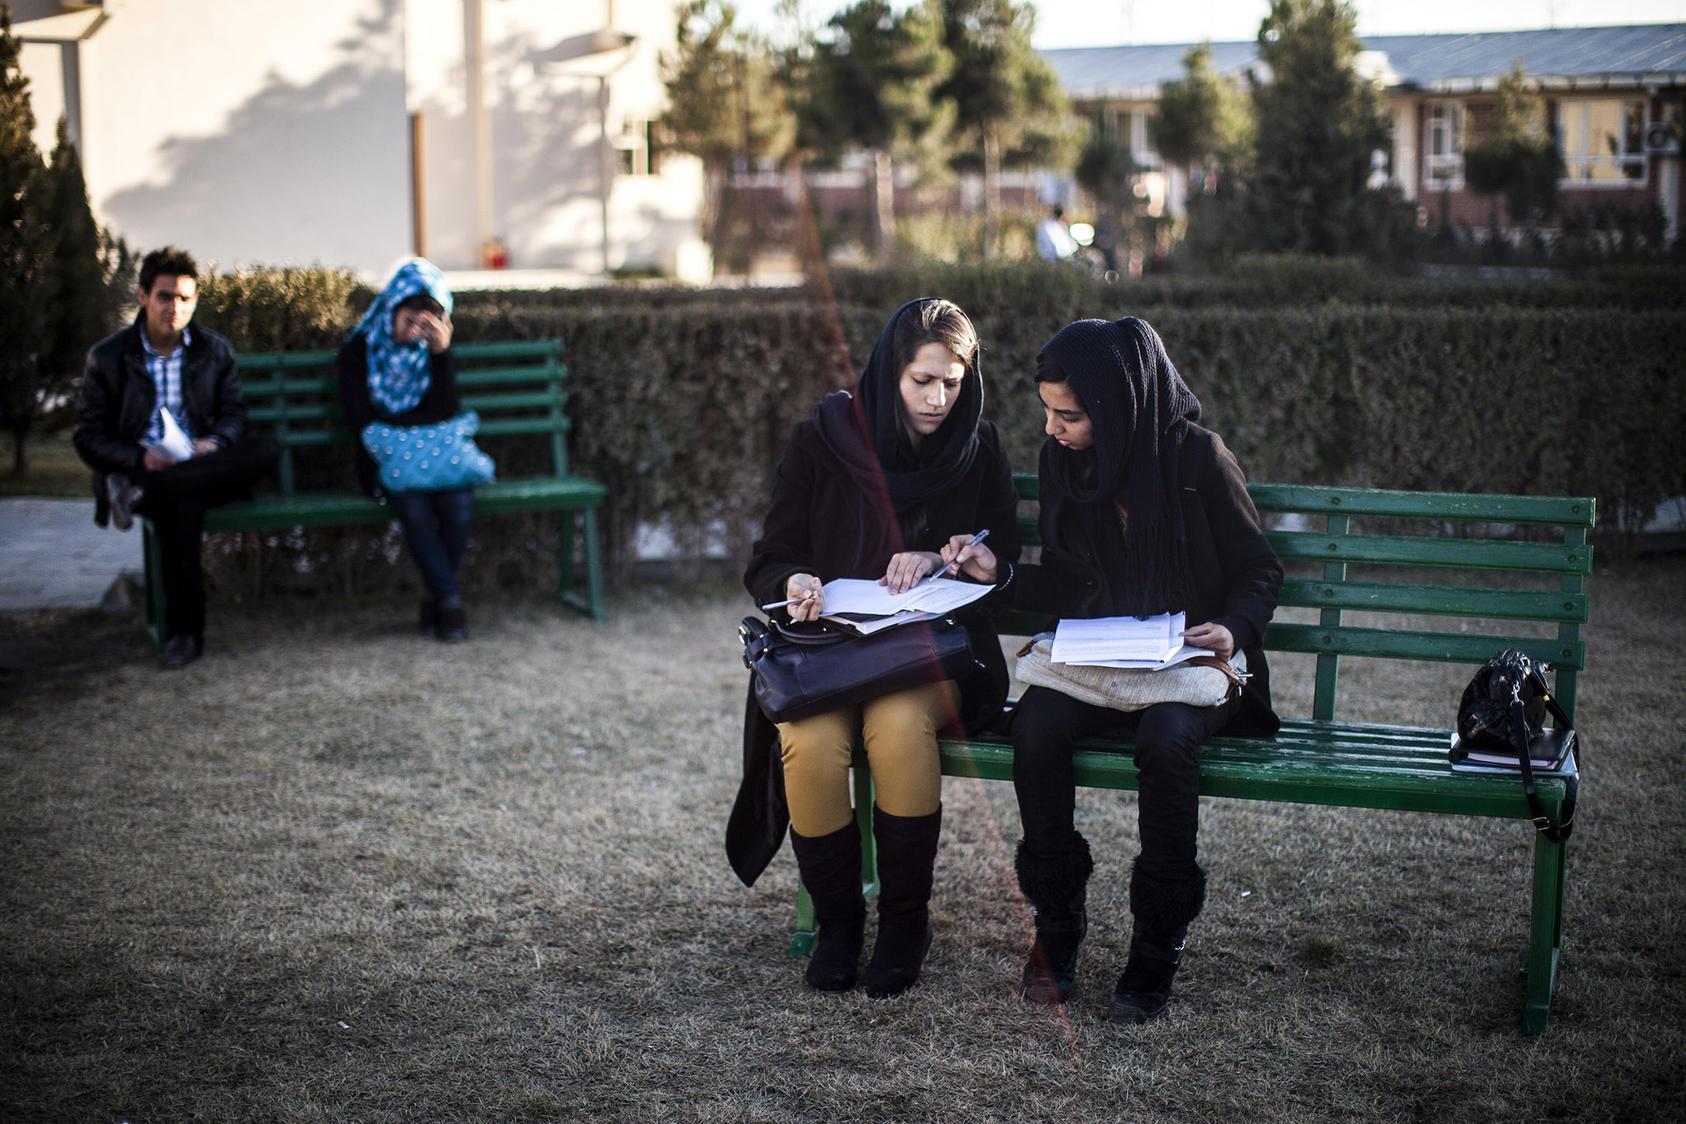 Students at the American University of Afghanistan study in Kabul, Afghanistan. (Bryan Denton/The New York Times)